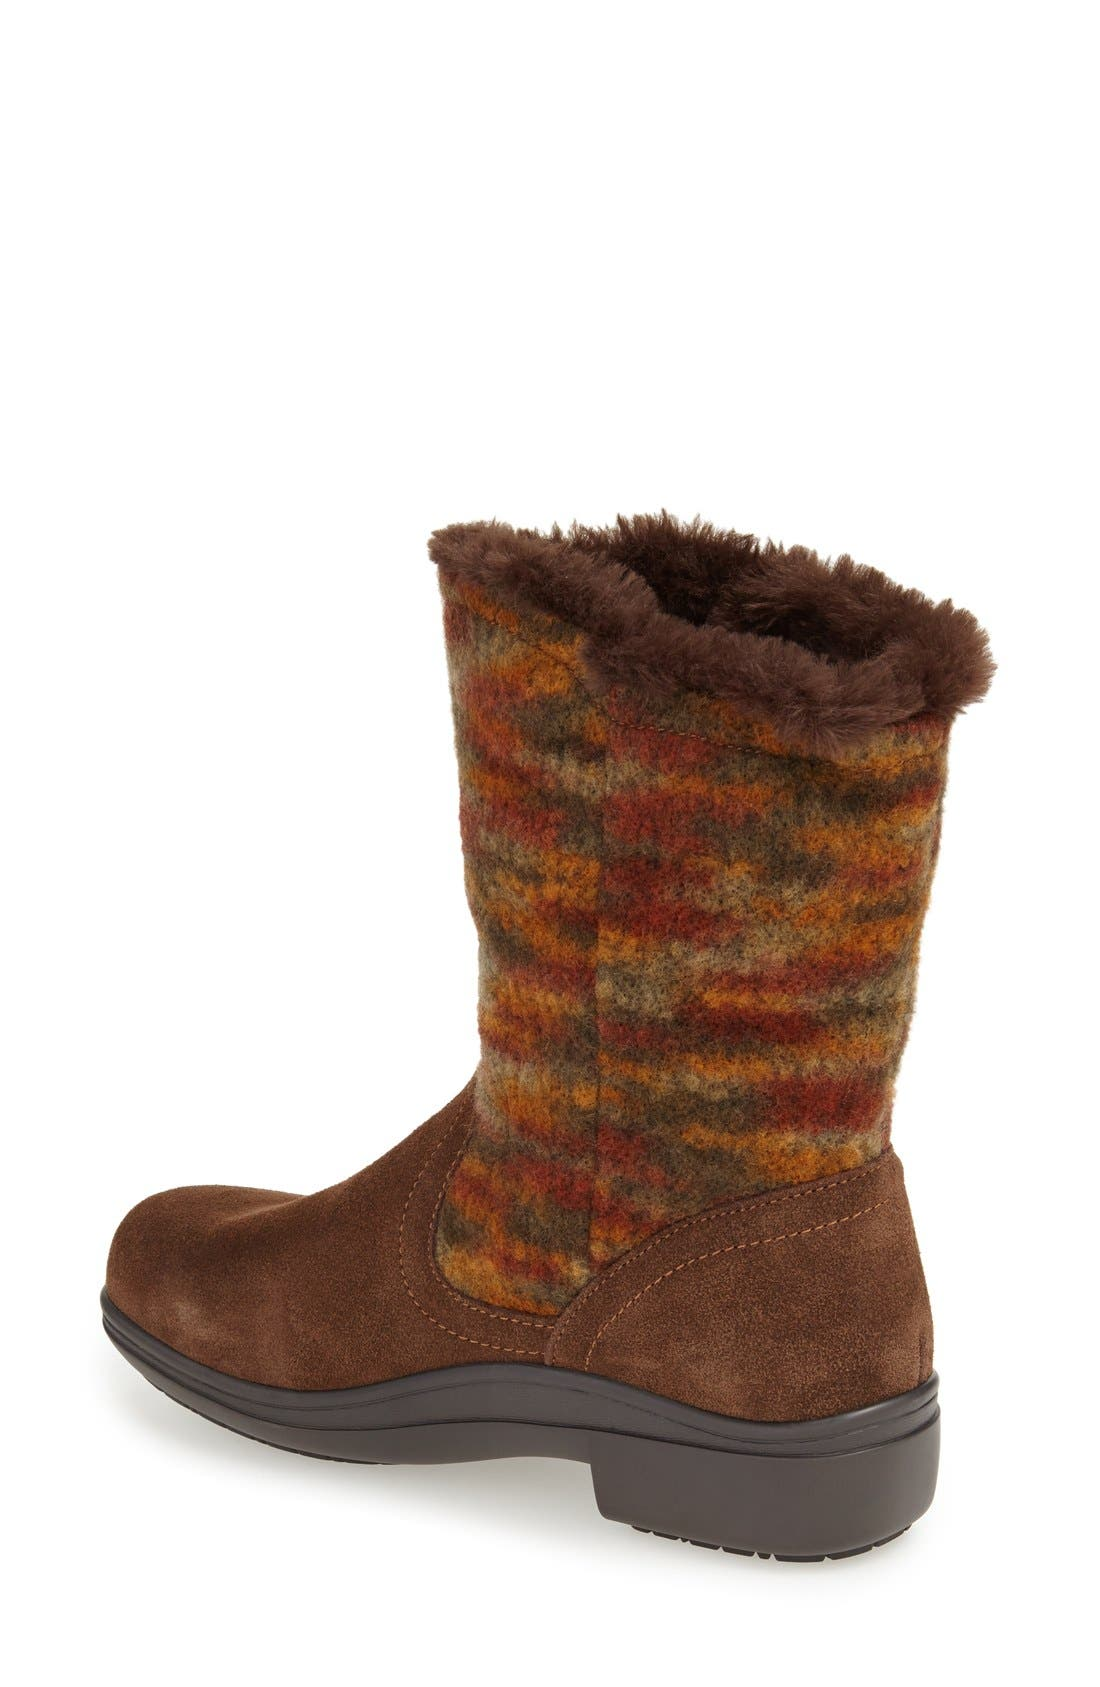 'Nanook' Suede Boot,                             Alternate thumbnail 2, color,                             Pecan Fuzzy Leather